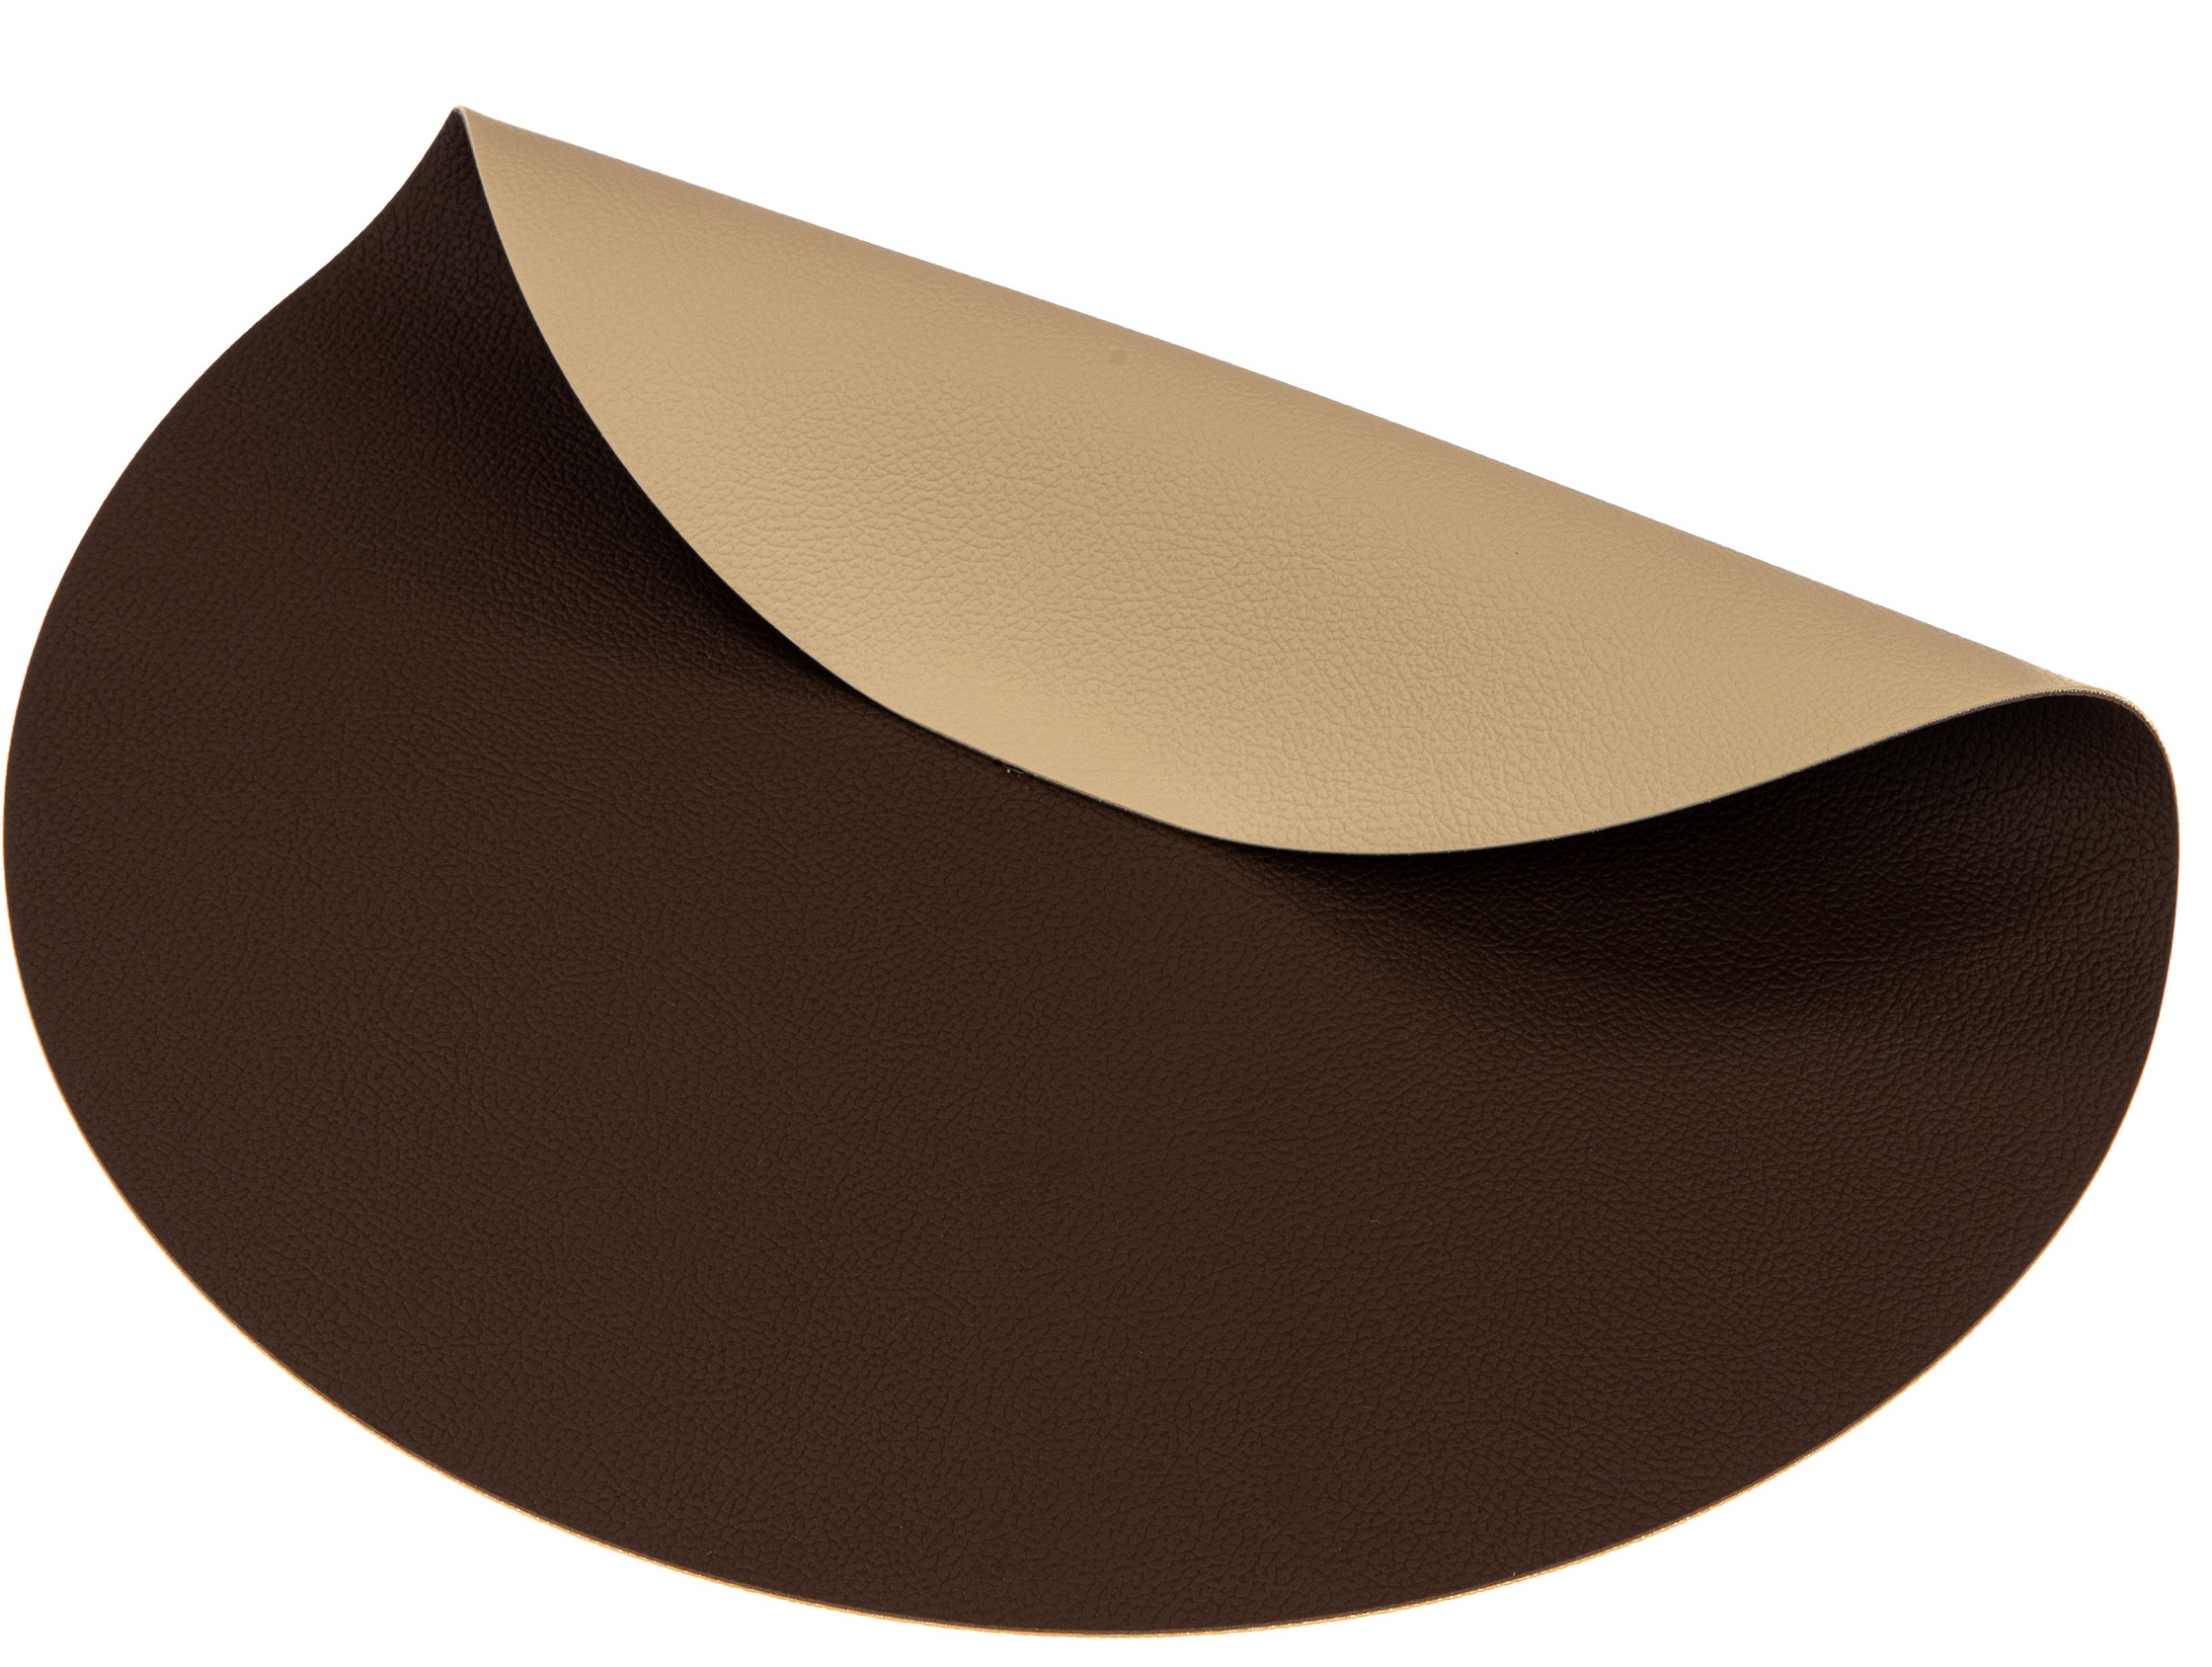 Jay Hill Placemat Rond Leer Bruin Zand  38 cm